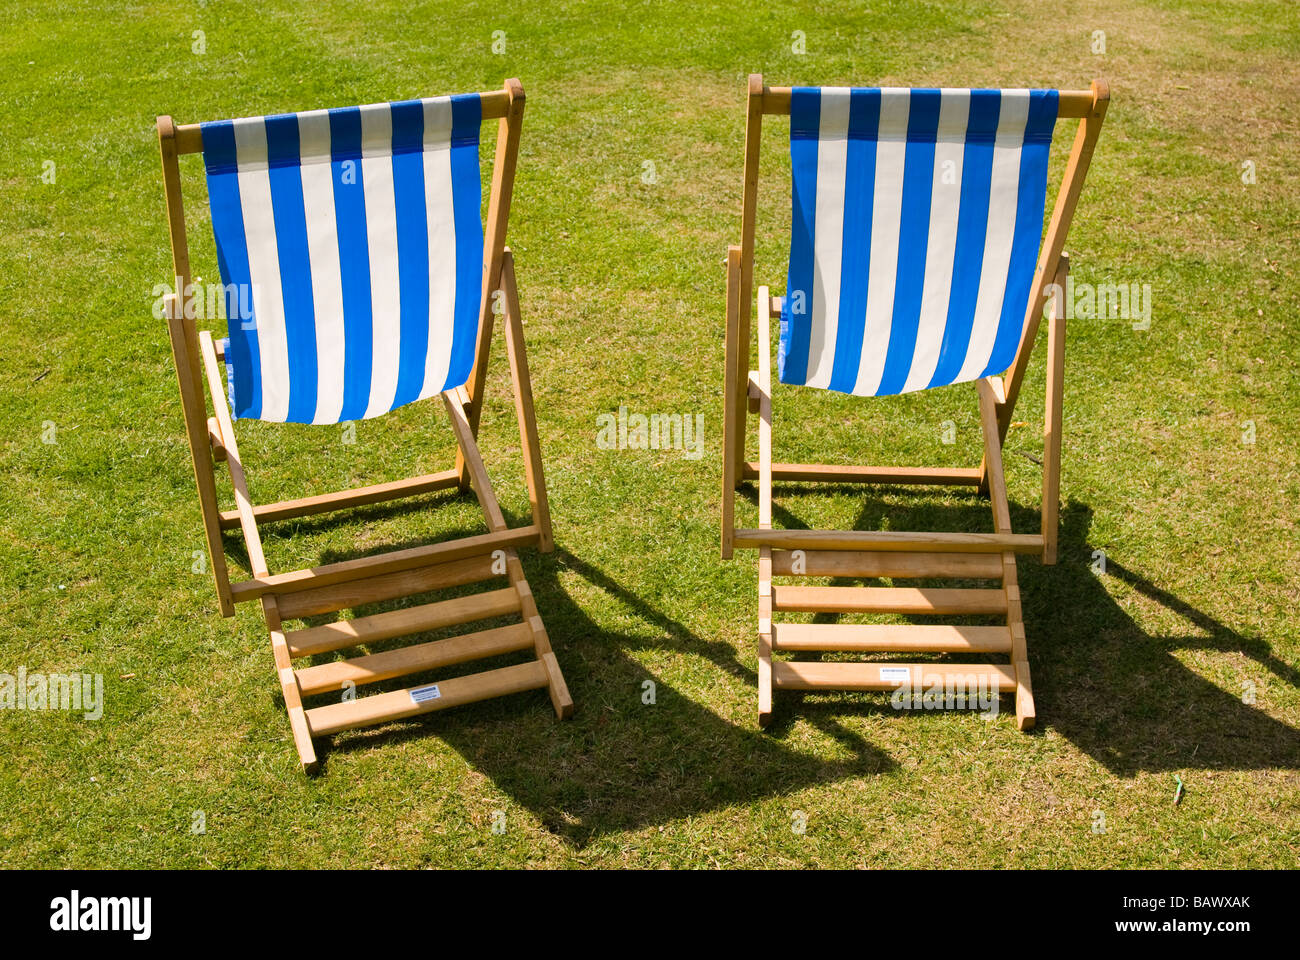 Deckchairs on a lawn - Stock Image